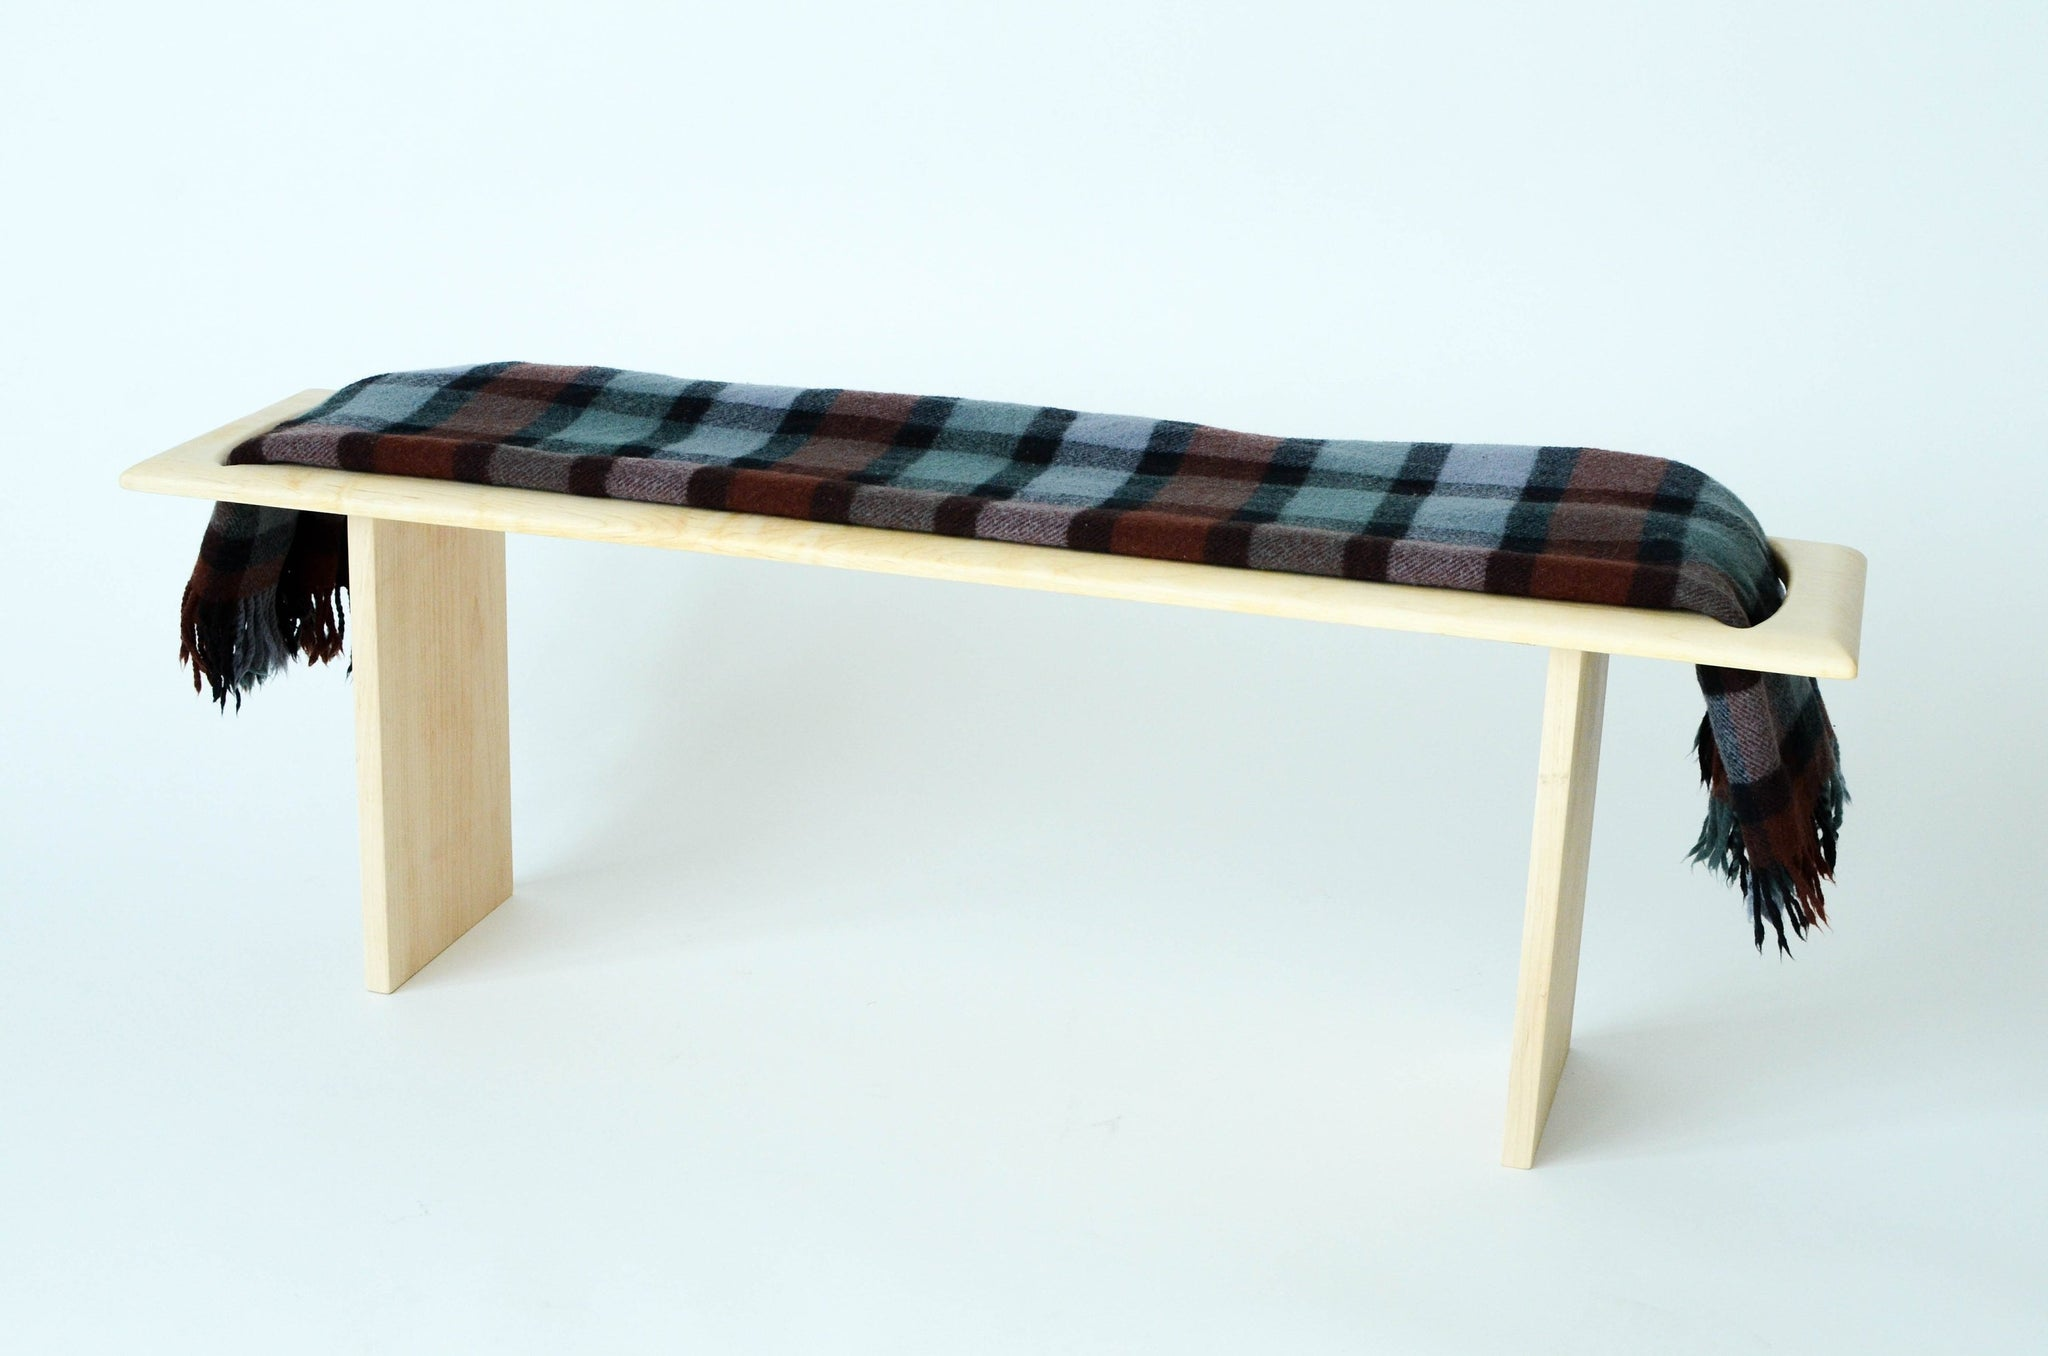 Cool Blanket Wood Bench 11Th Lane Home Furnishings Machost Co Dining Chair Design Ideas Machostcouk